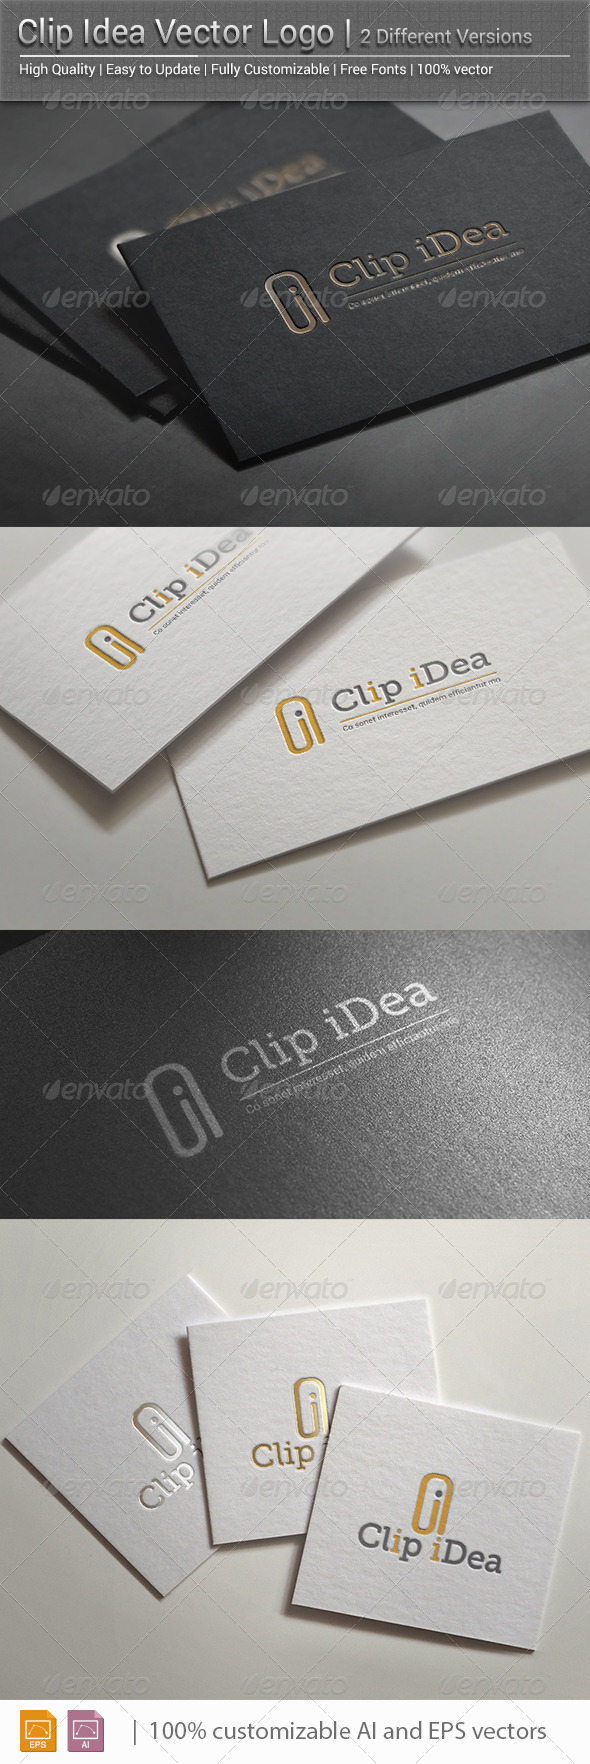 Clip Idea Vector Logo - Vector Abstract